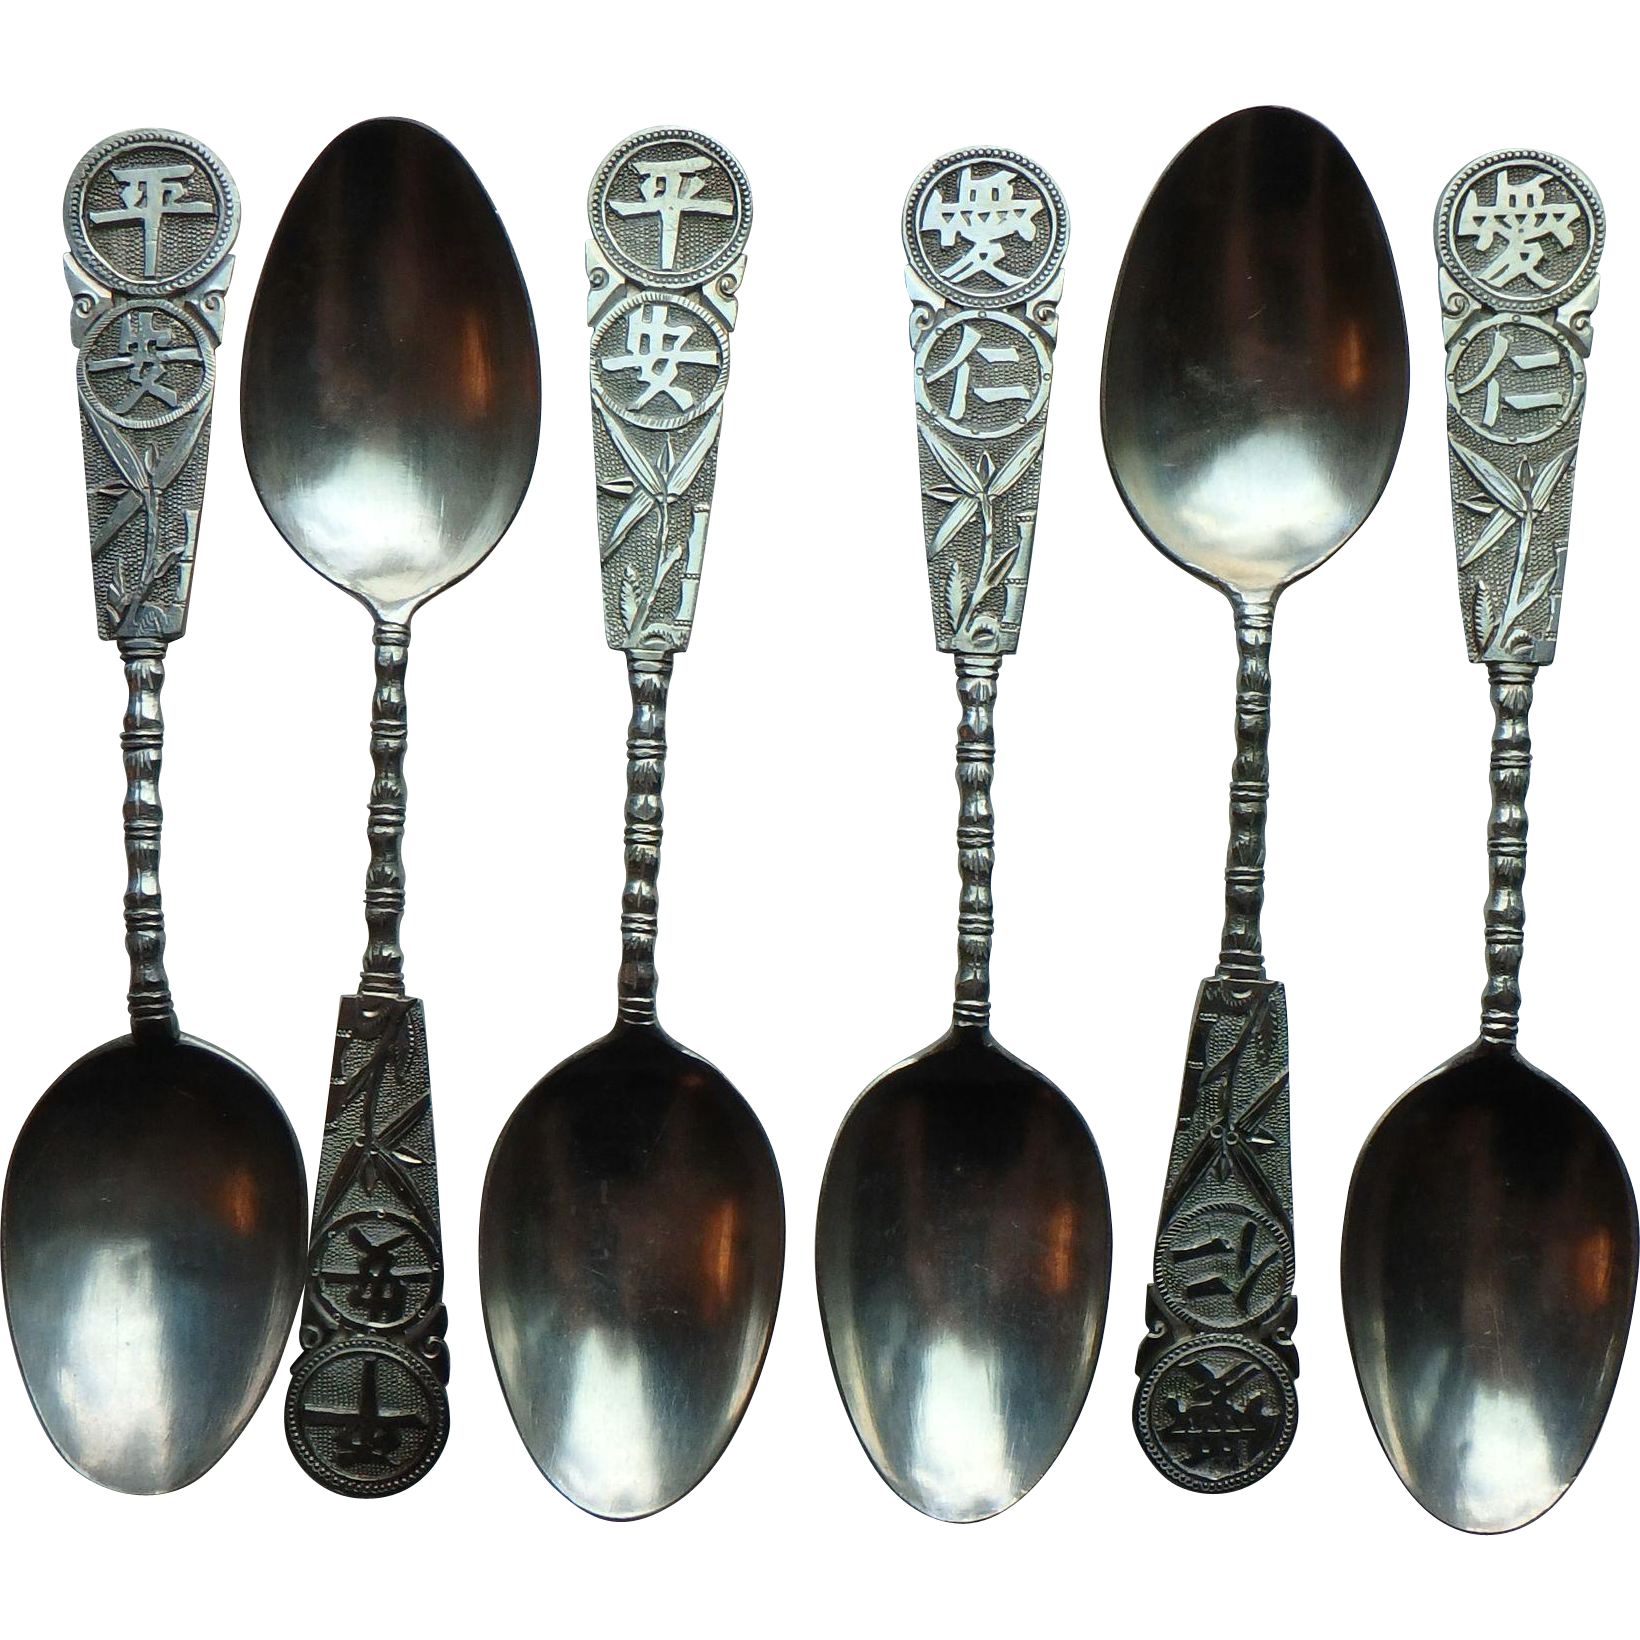 Chinese Sterling Demitasse Spoons, set of 6